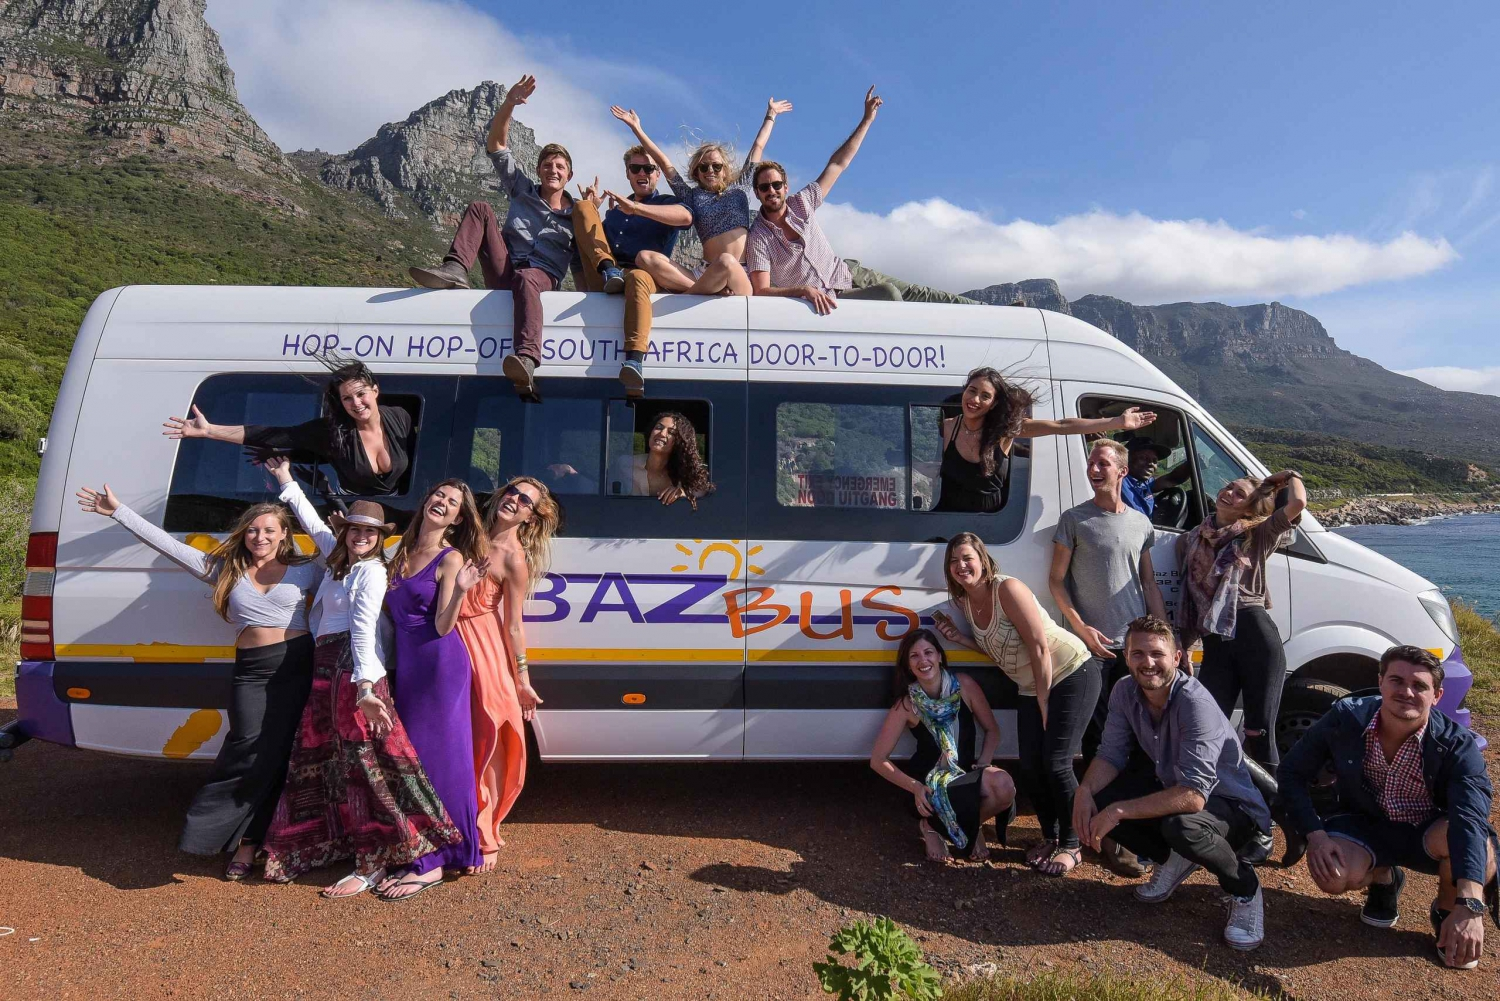 Hop-on Hop-off Bus between Cape Town & Port Elizabeth